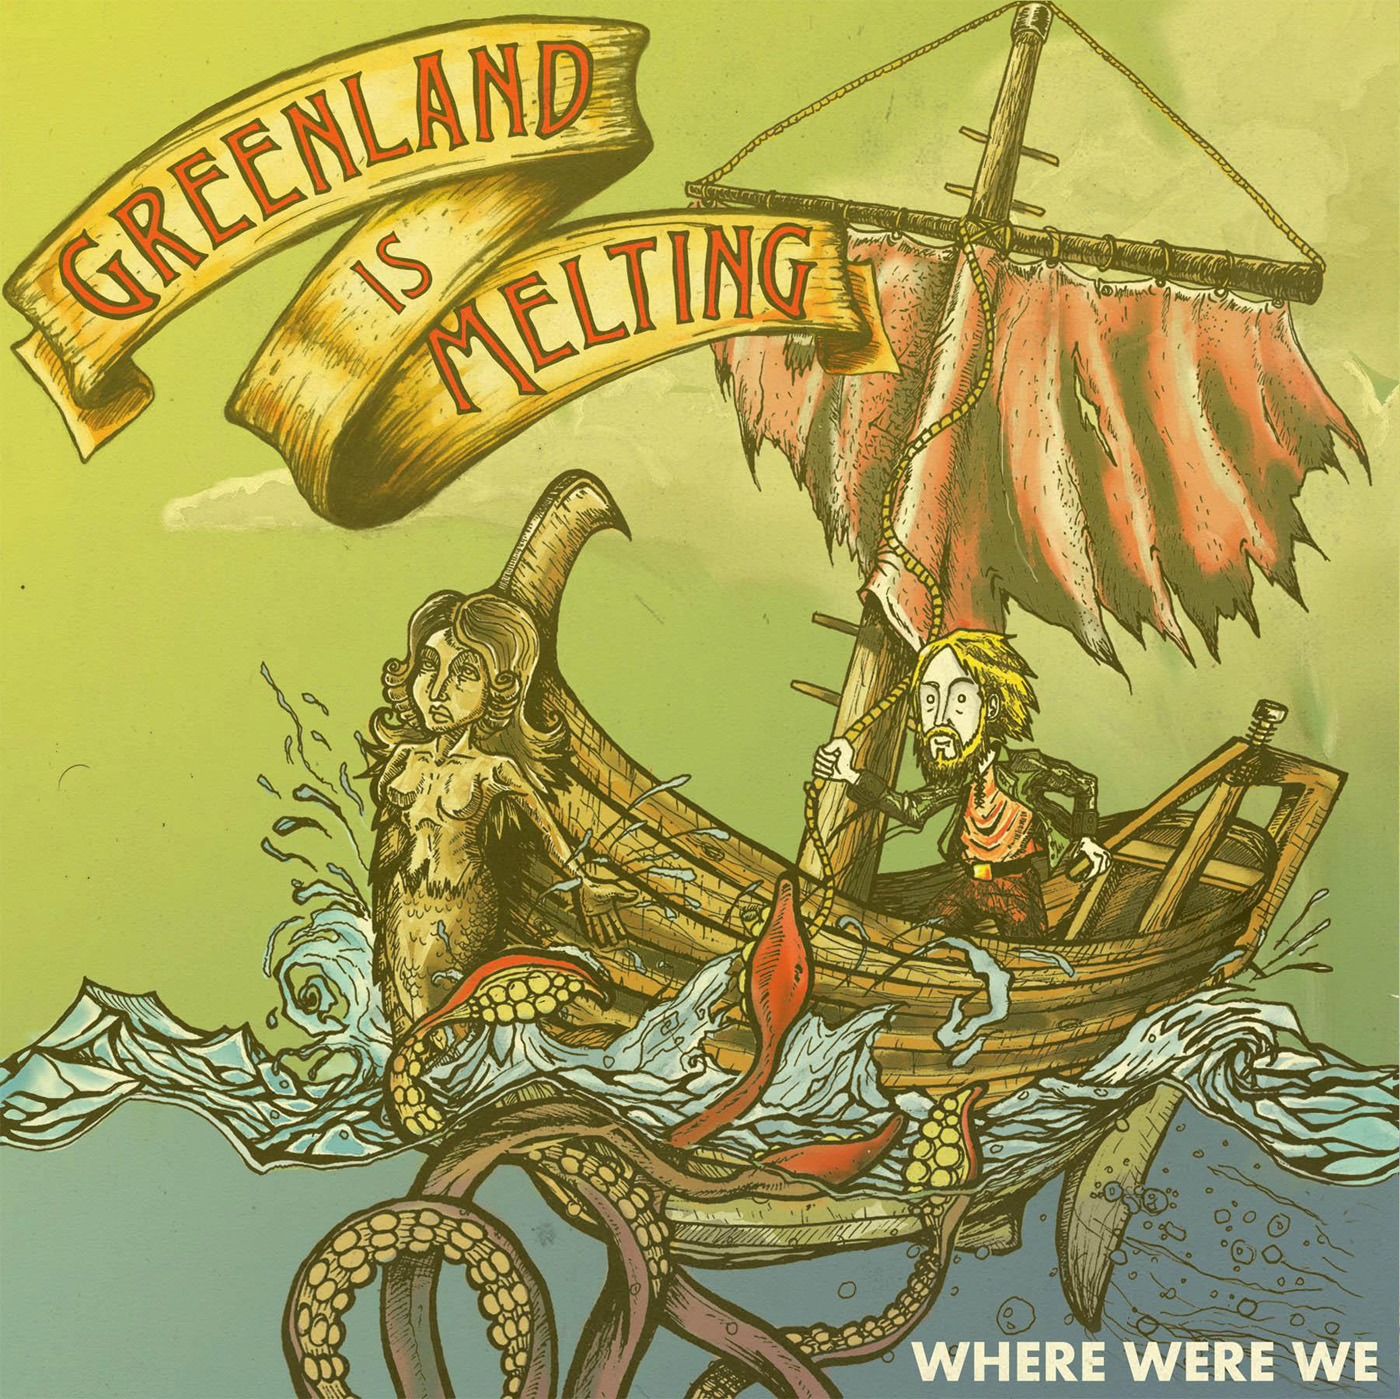 Greenland Is Melting - Where Were We CD / Digital Download